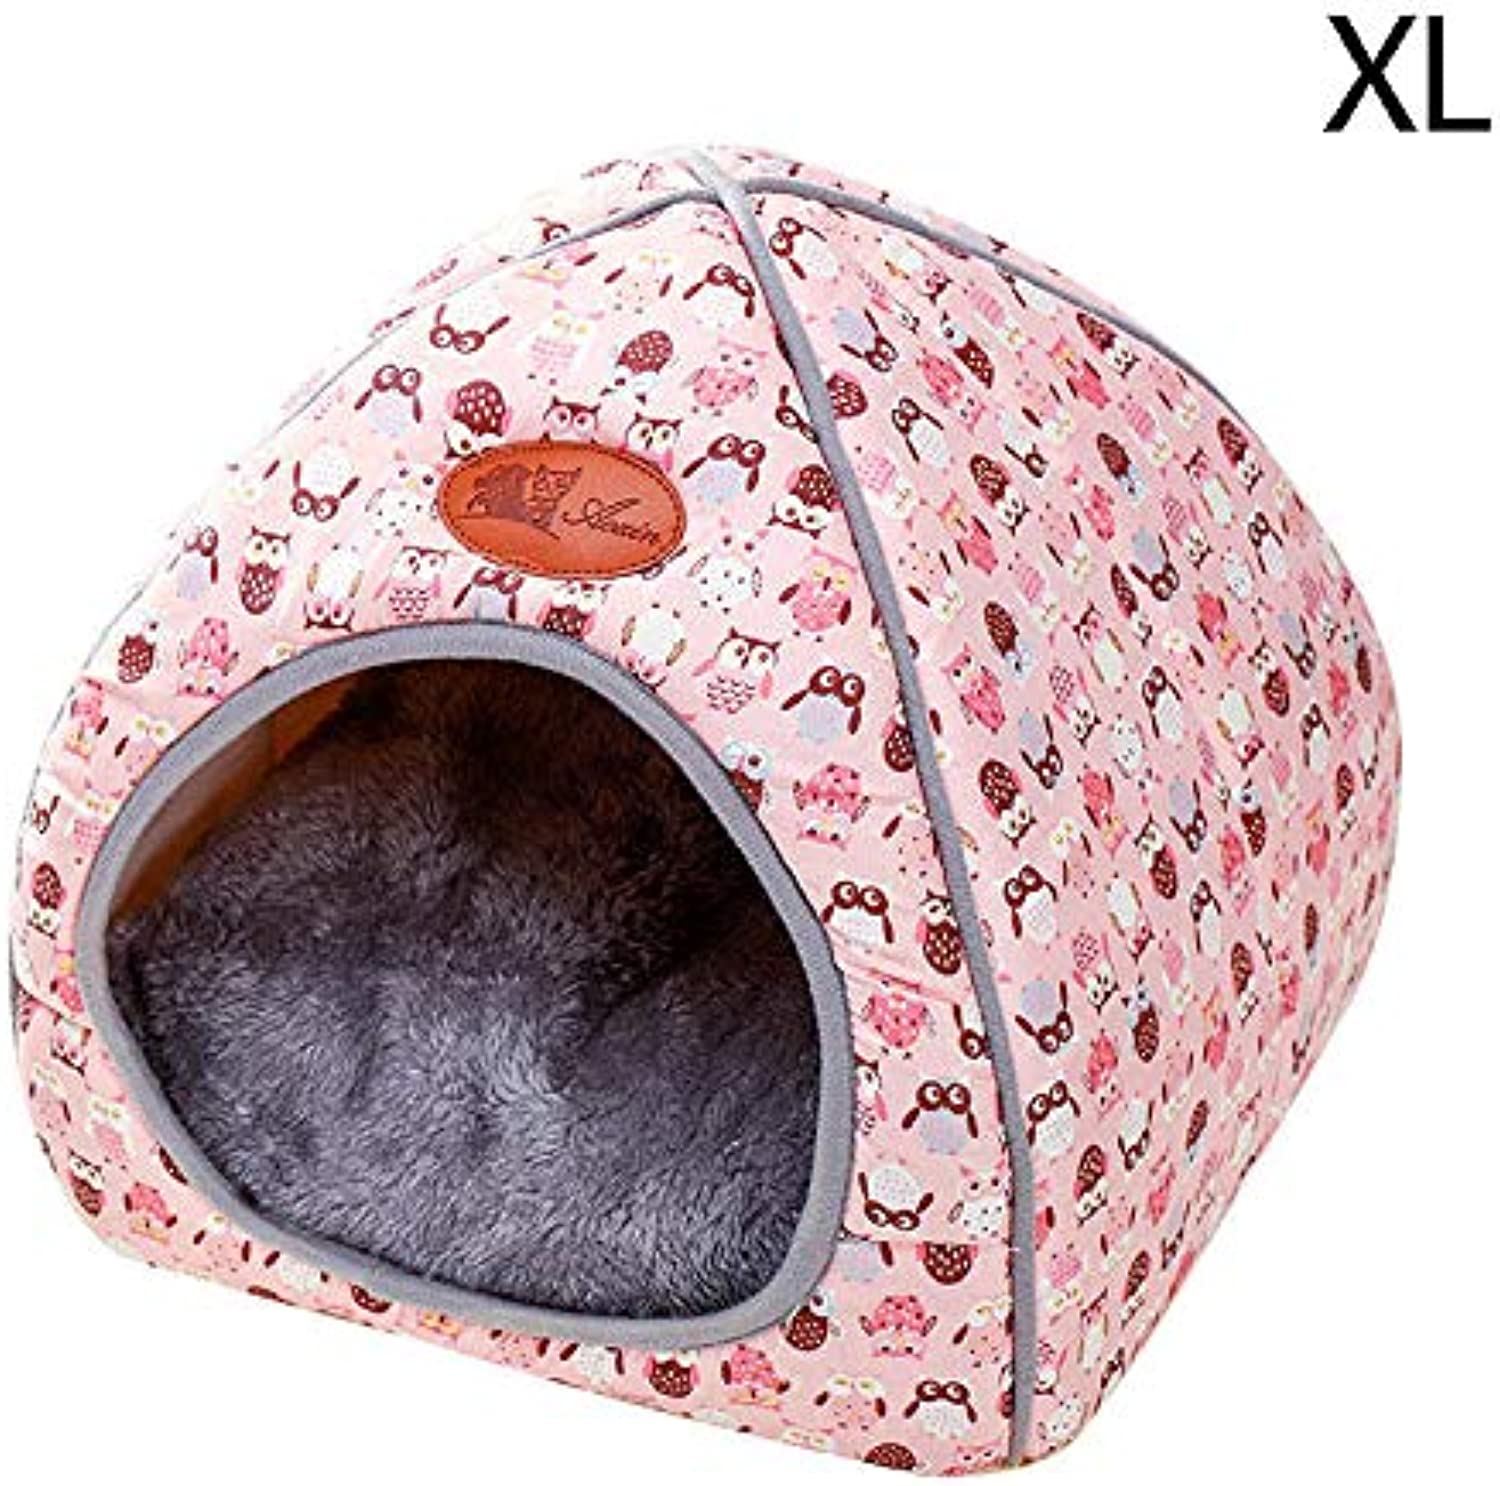 Cat Tent Dog Bed Pet House Foldable Soft Cave Cute Dog Beds Kennel Nest Plush